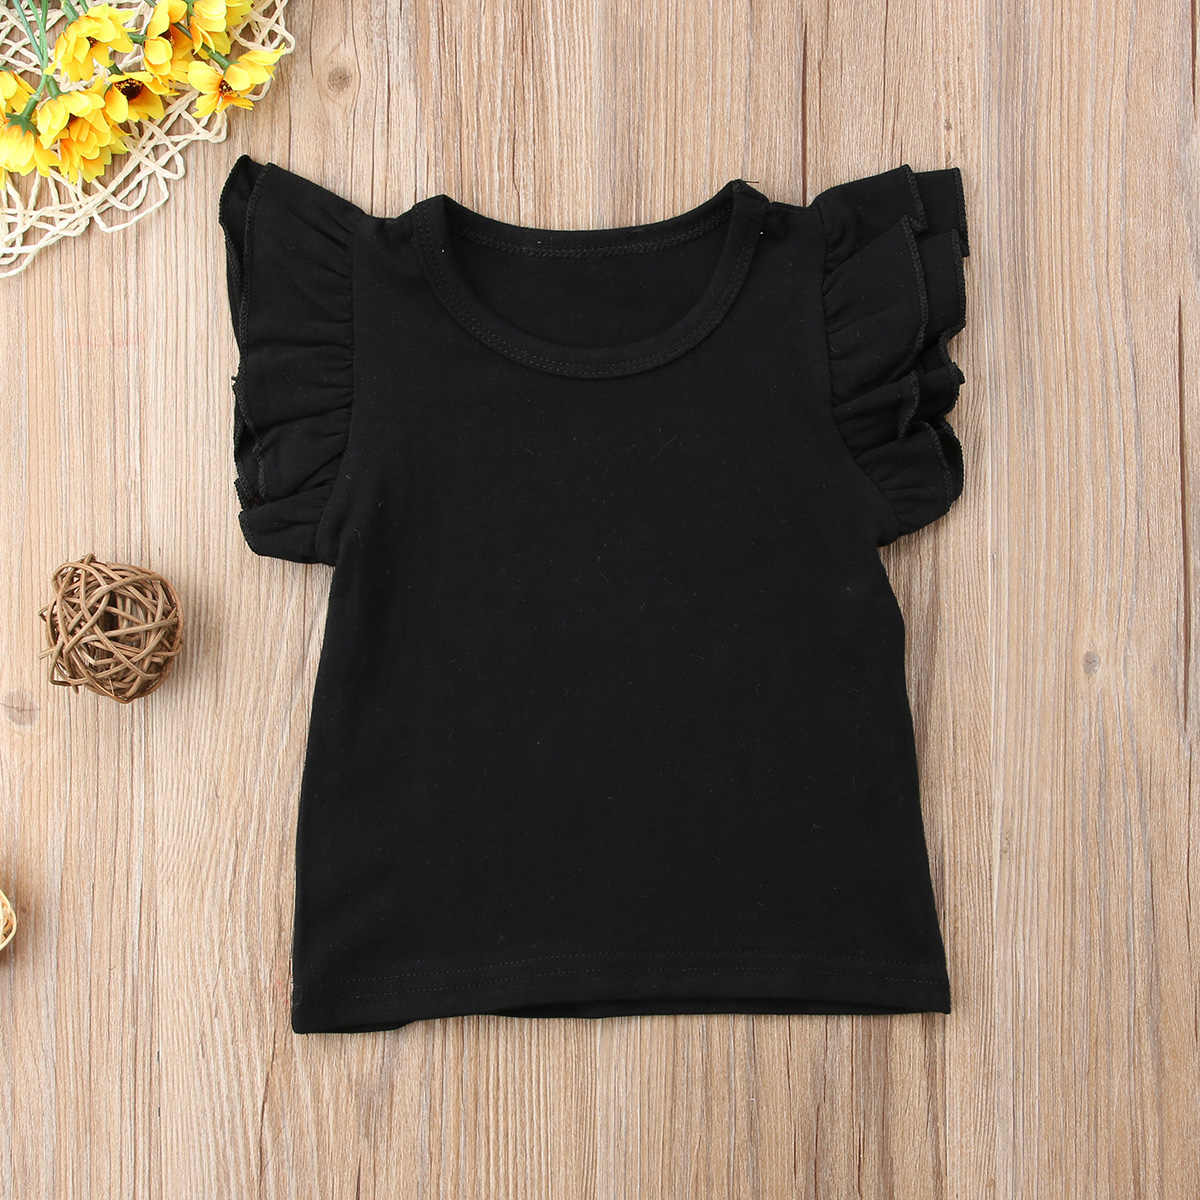 Summer Kids Baby Girl Short Sleeve T-Shirt Cotton Ruffle Summer Tee Shirt Top Sunsuit Solid Round Neck Clothes